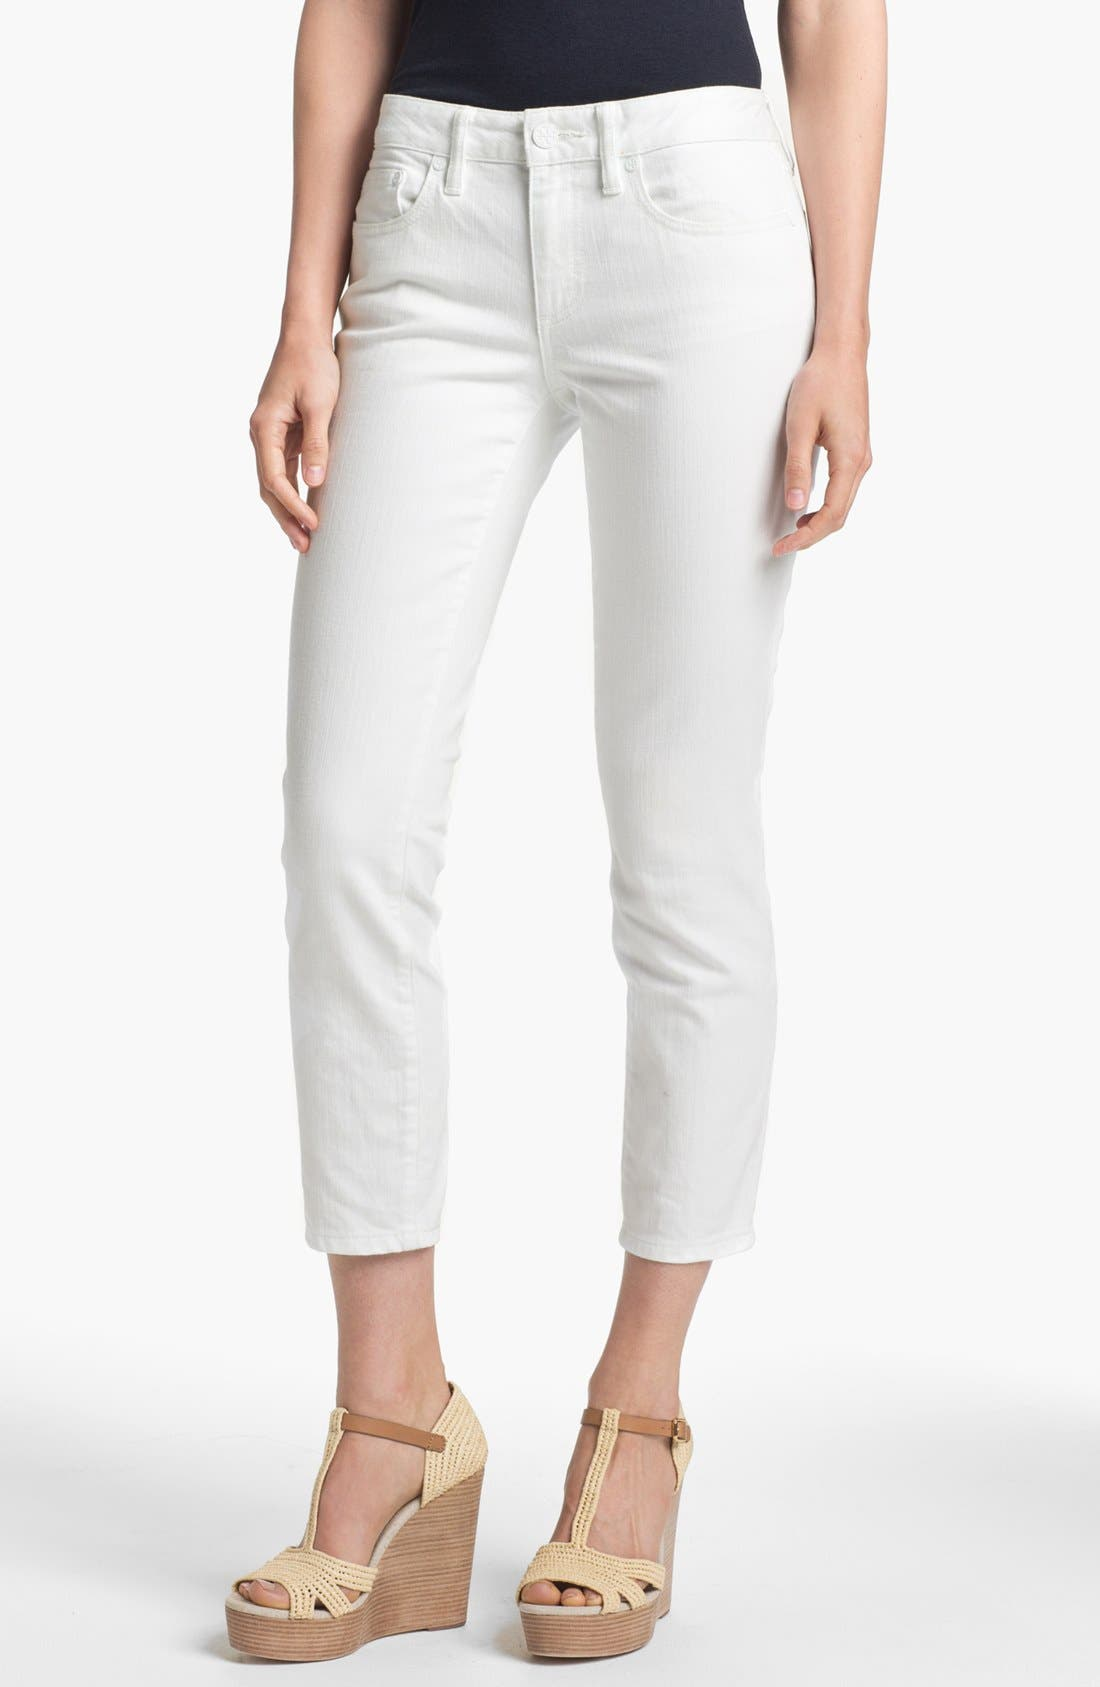 Alternate Image 1 Selected - Tory Burch 'Alexa' Crop Skinny Stretch Jeans